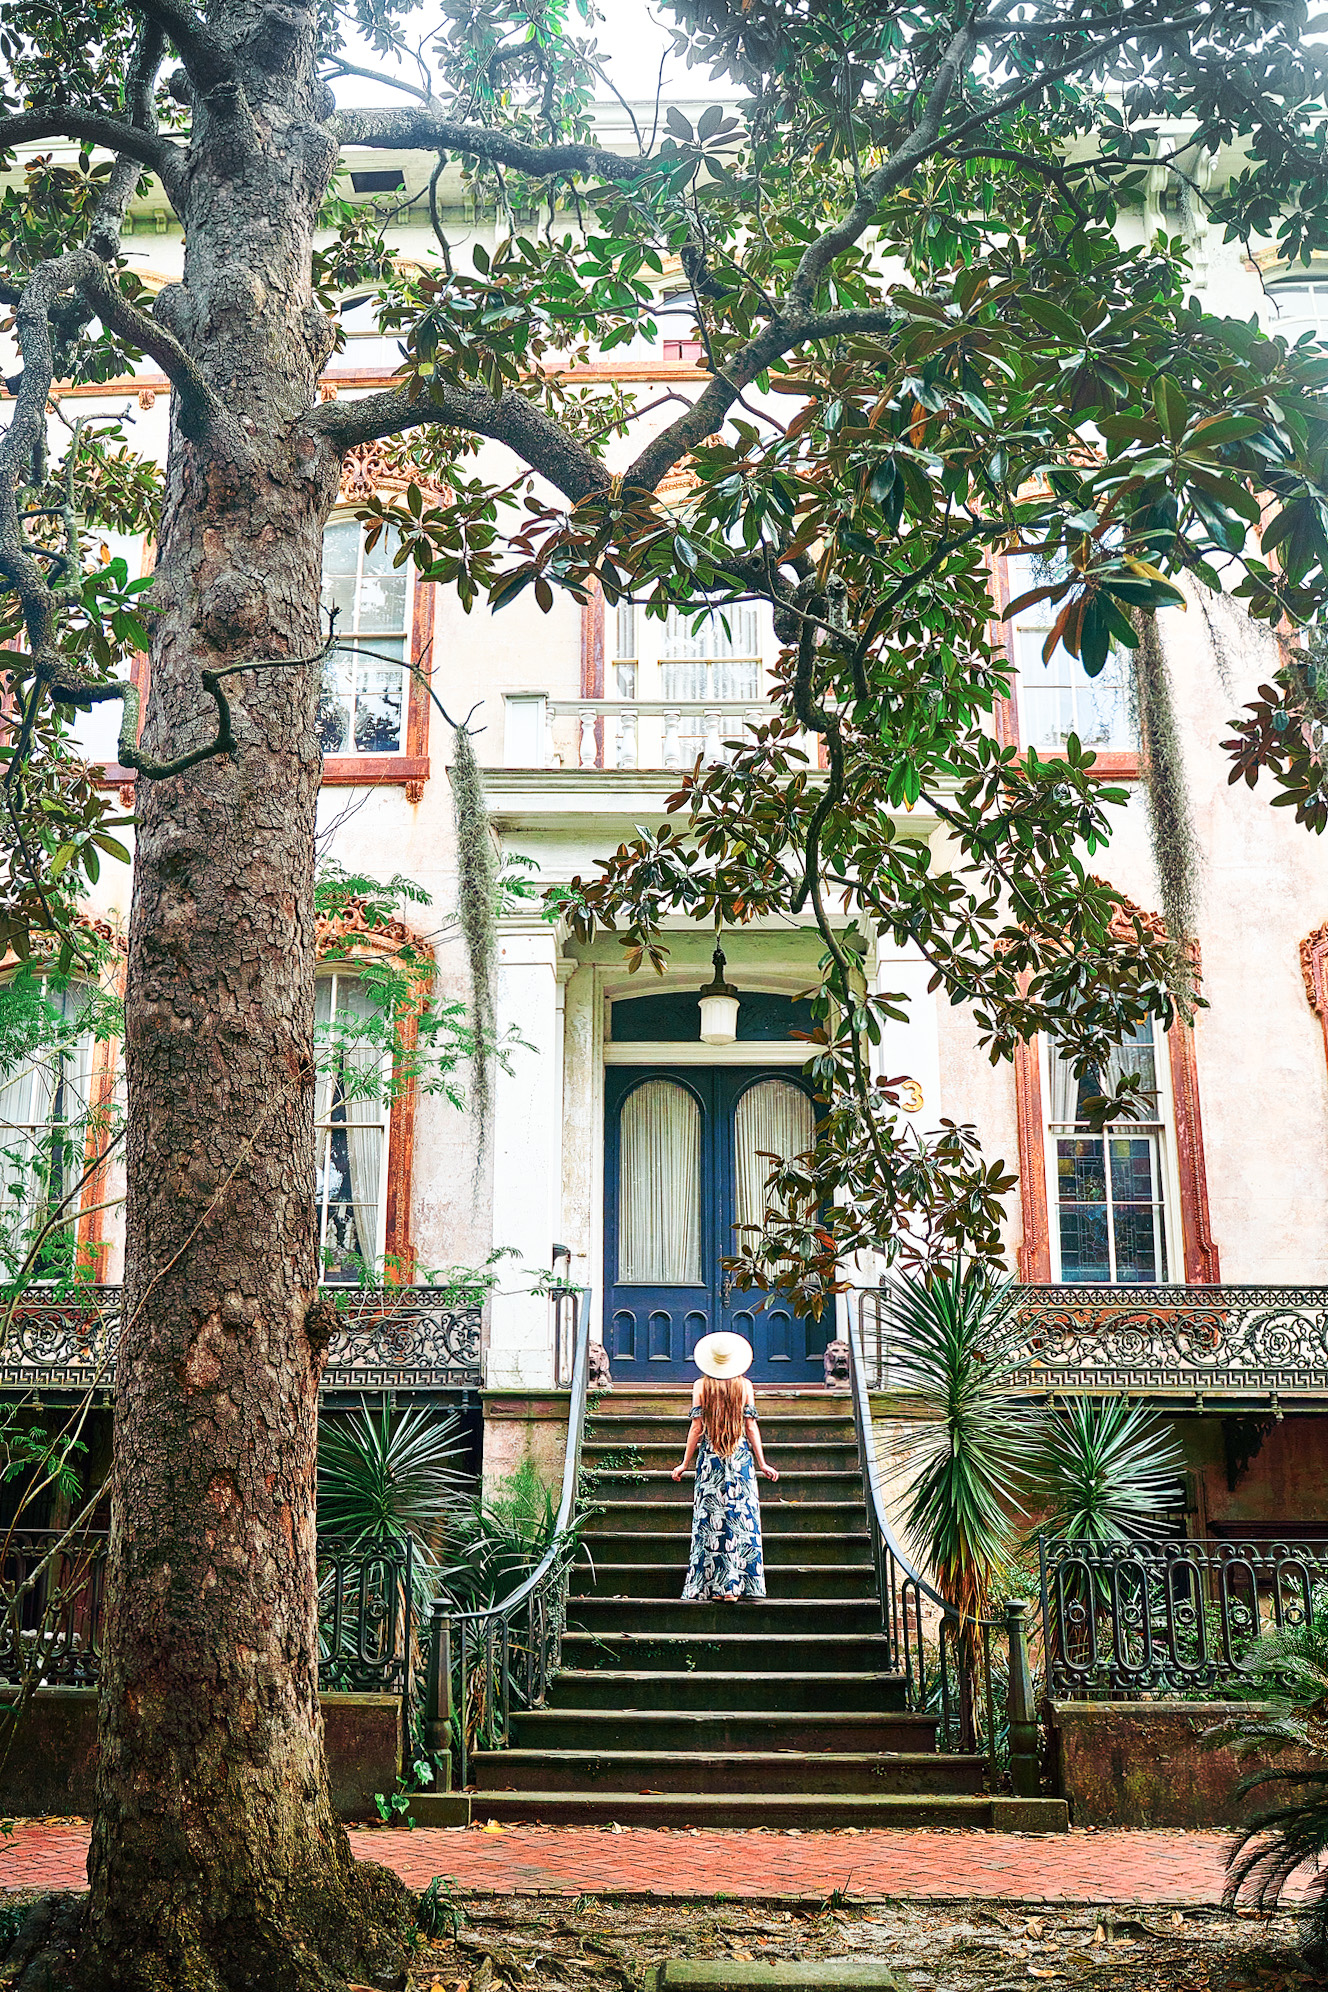 Photo of a girl standing on the steps of a house in Savannah's Historic District, one of the best neighborhoods to stay in Savannah!